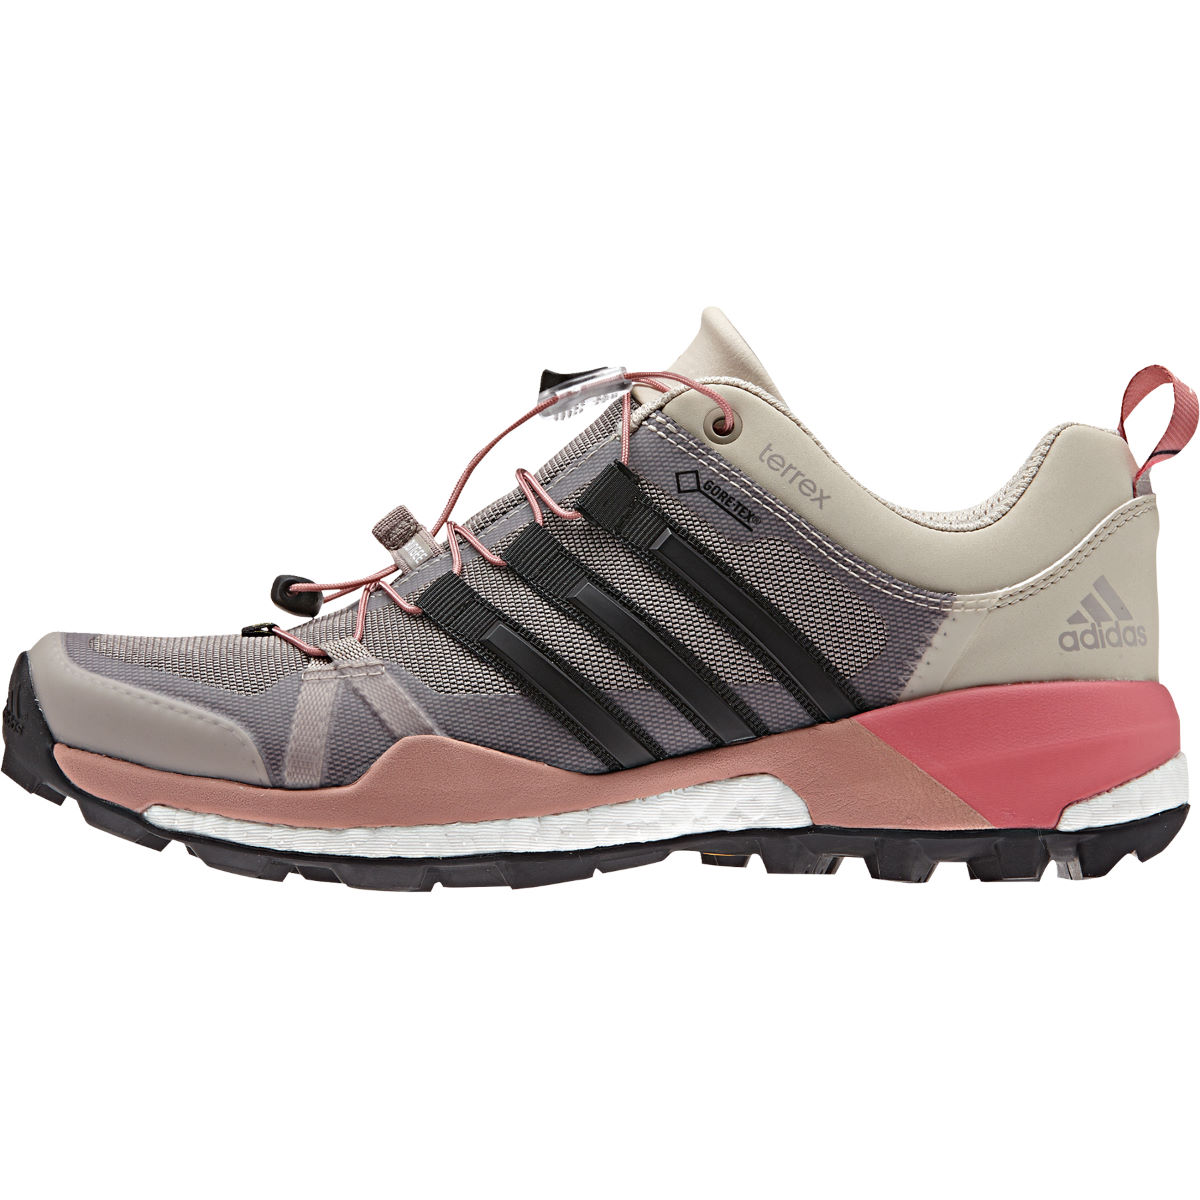 adidas terrex skychaser gtx fast hike shopping biketorpedo. Black Bedroom Furniture Sets. Home Design Ideas